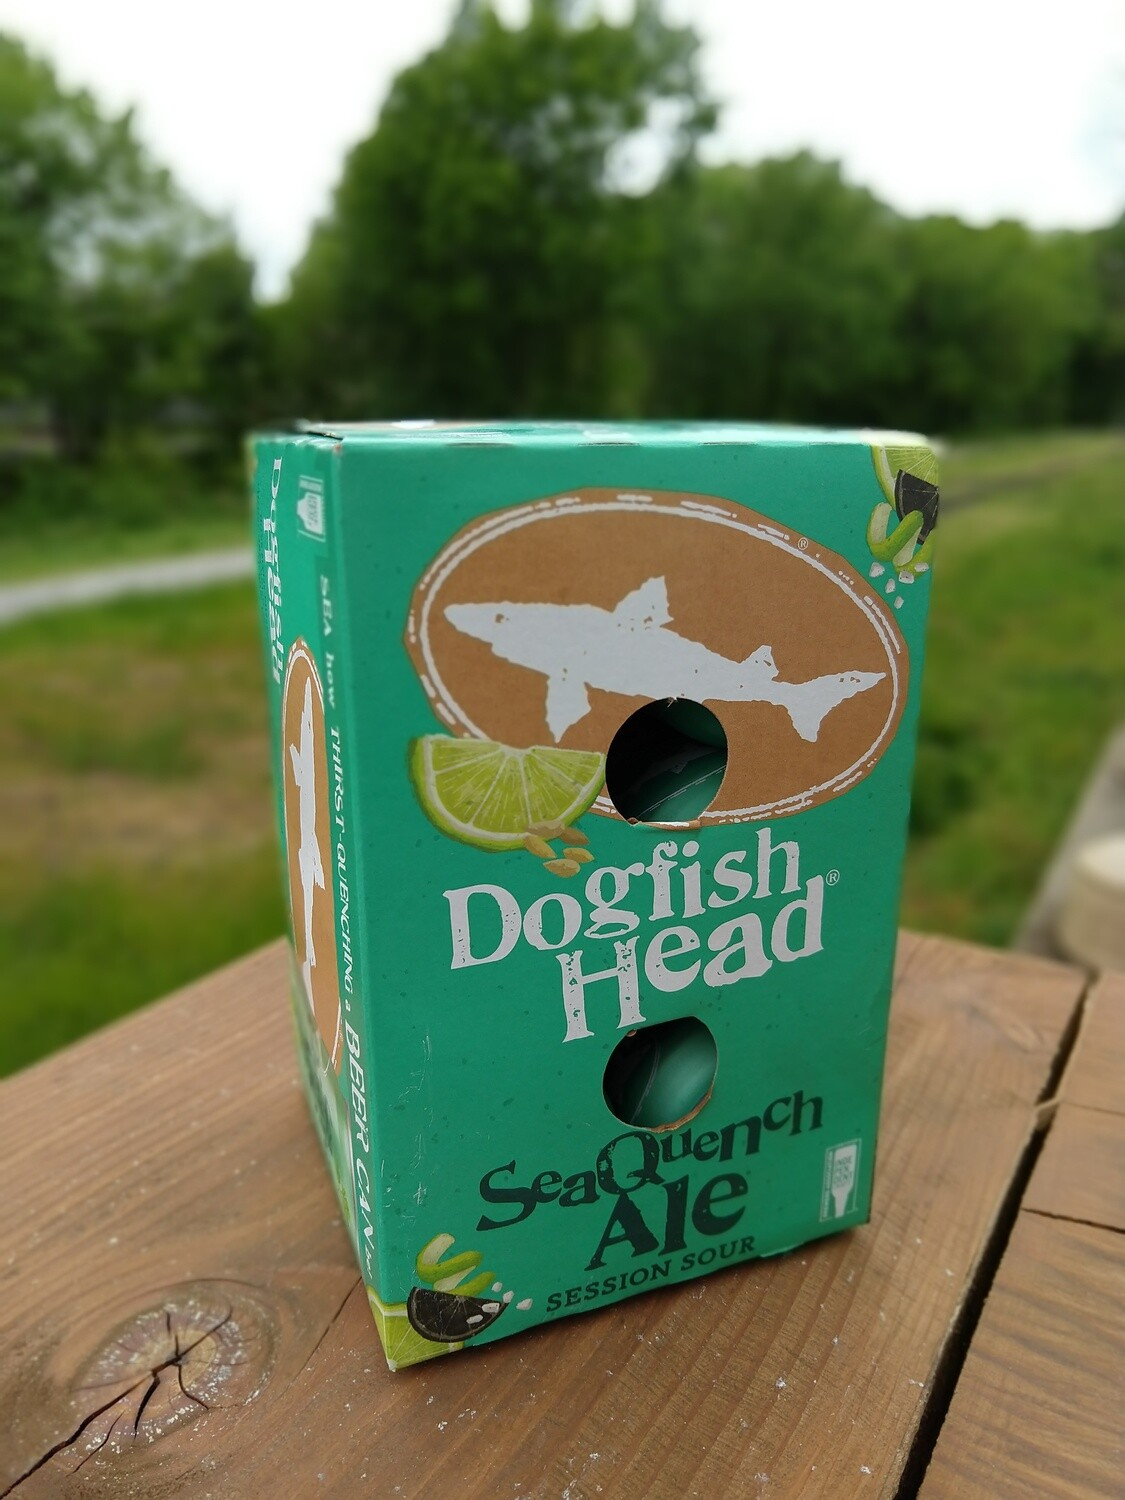 Dogfish Head Seaquench